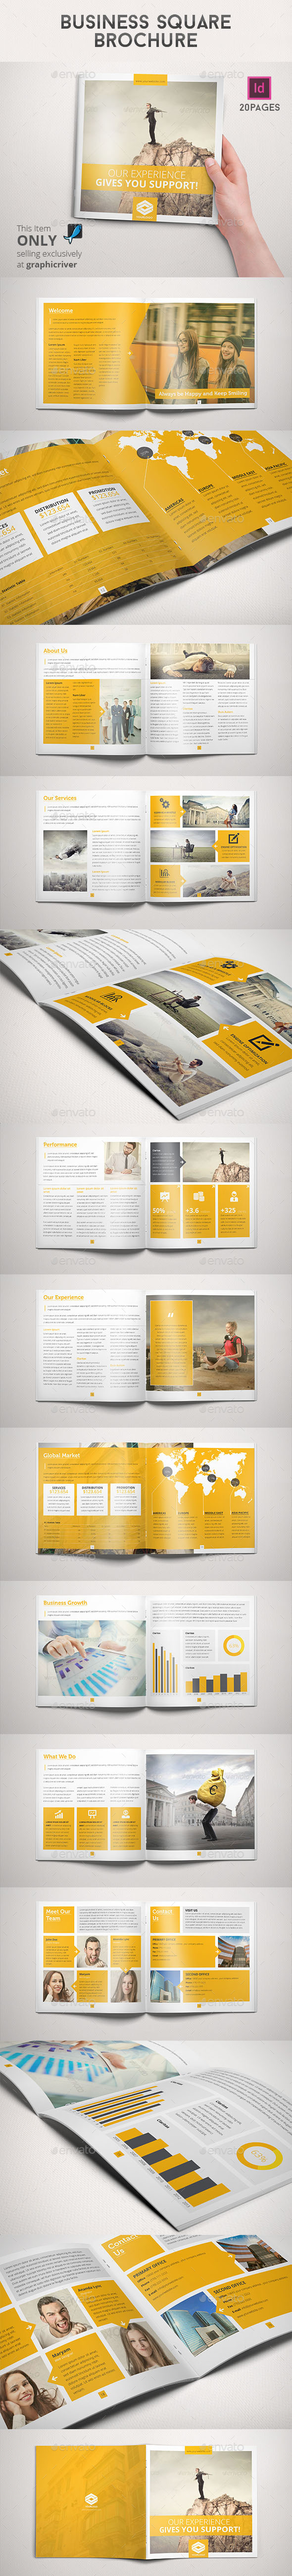 GraphicRiver Business Square Brochure 8824469